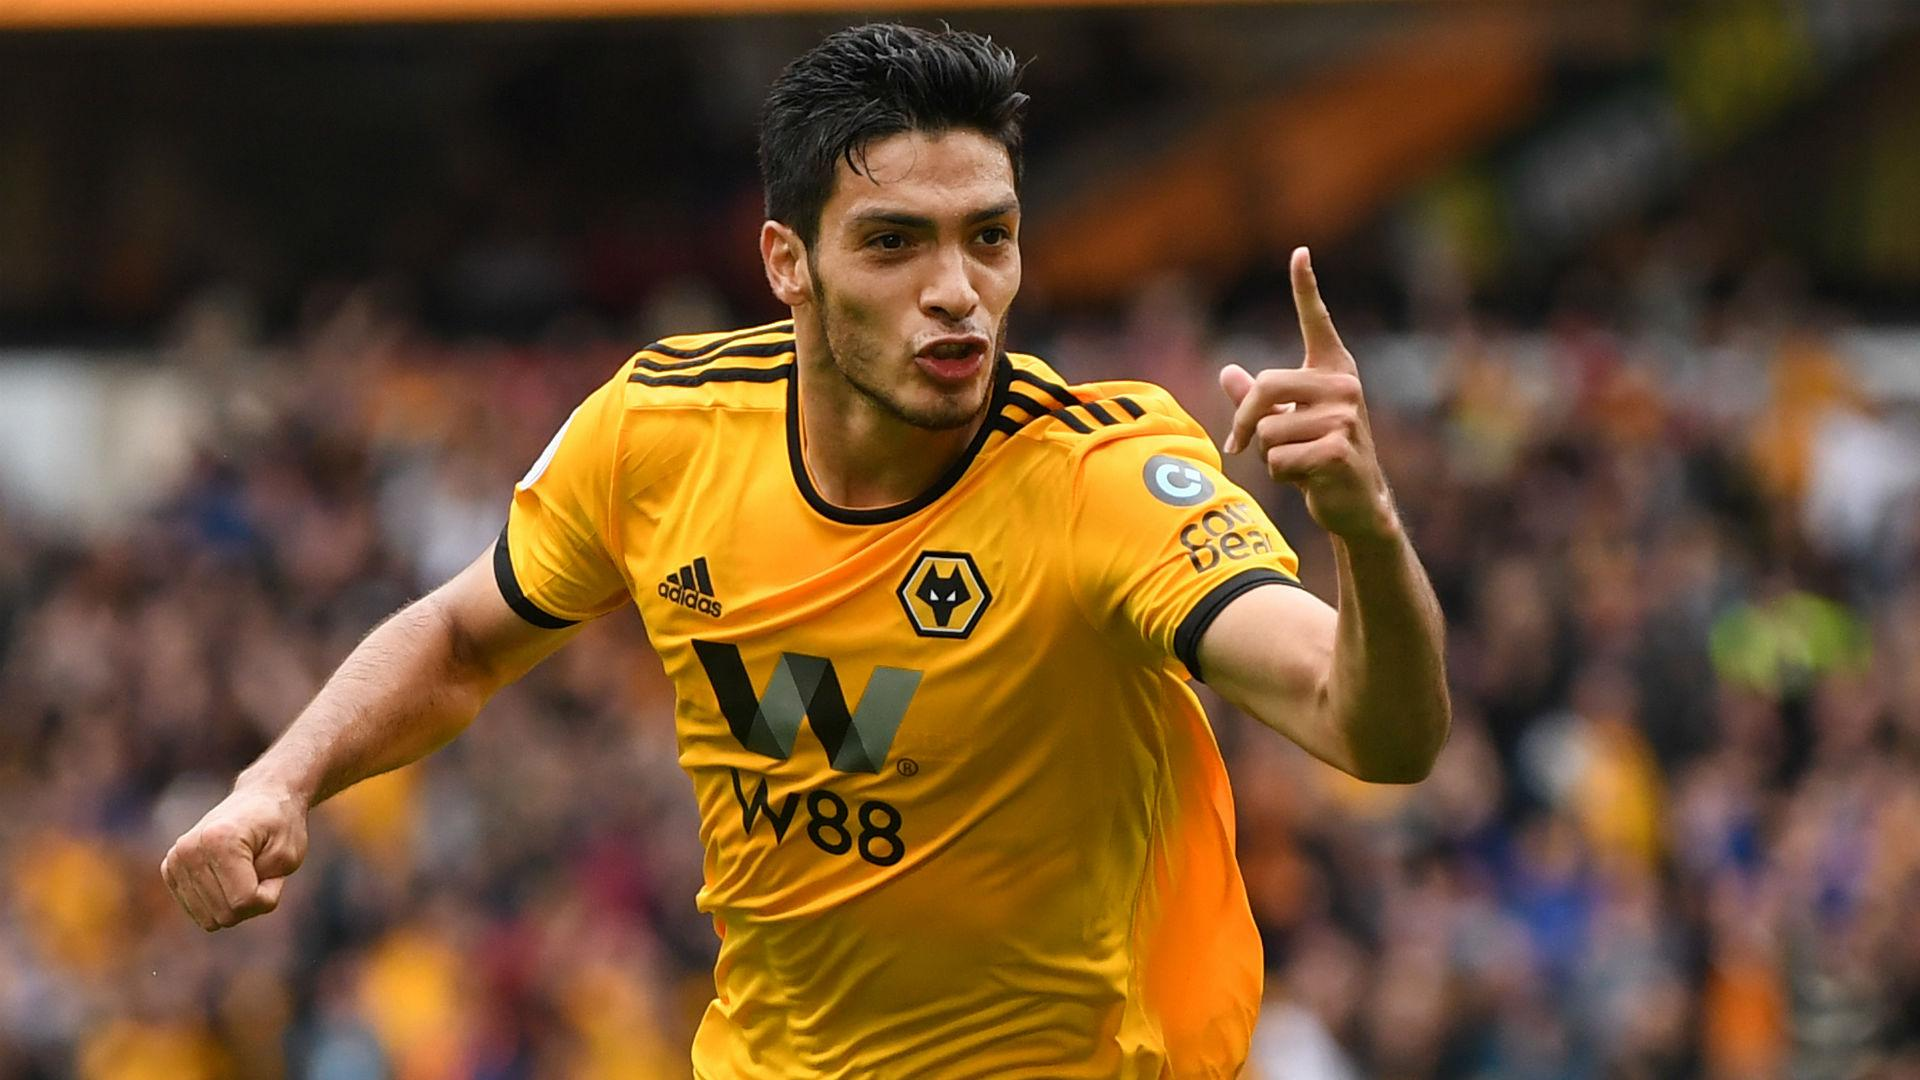 Raul Jimenez transfer news: Wolves complete club